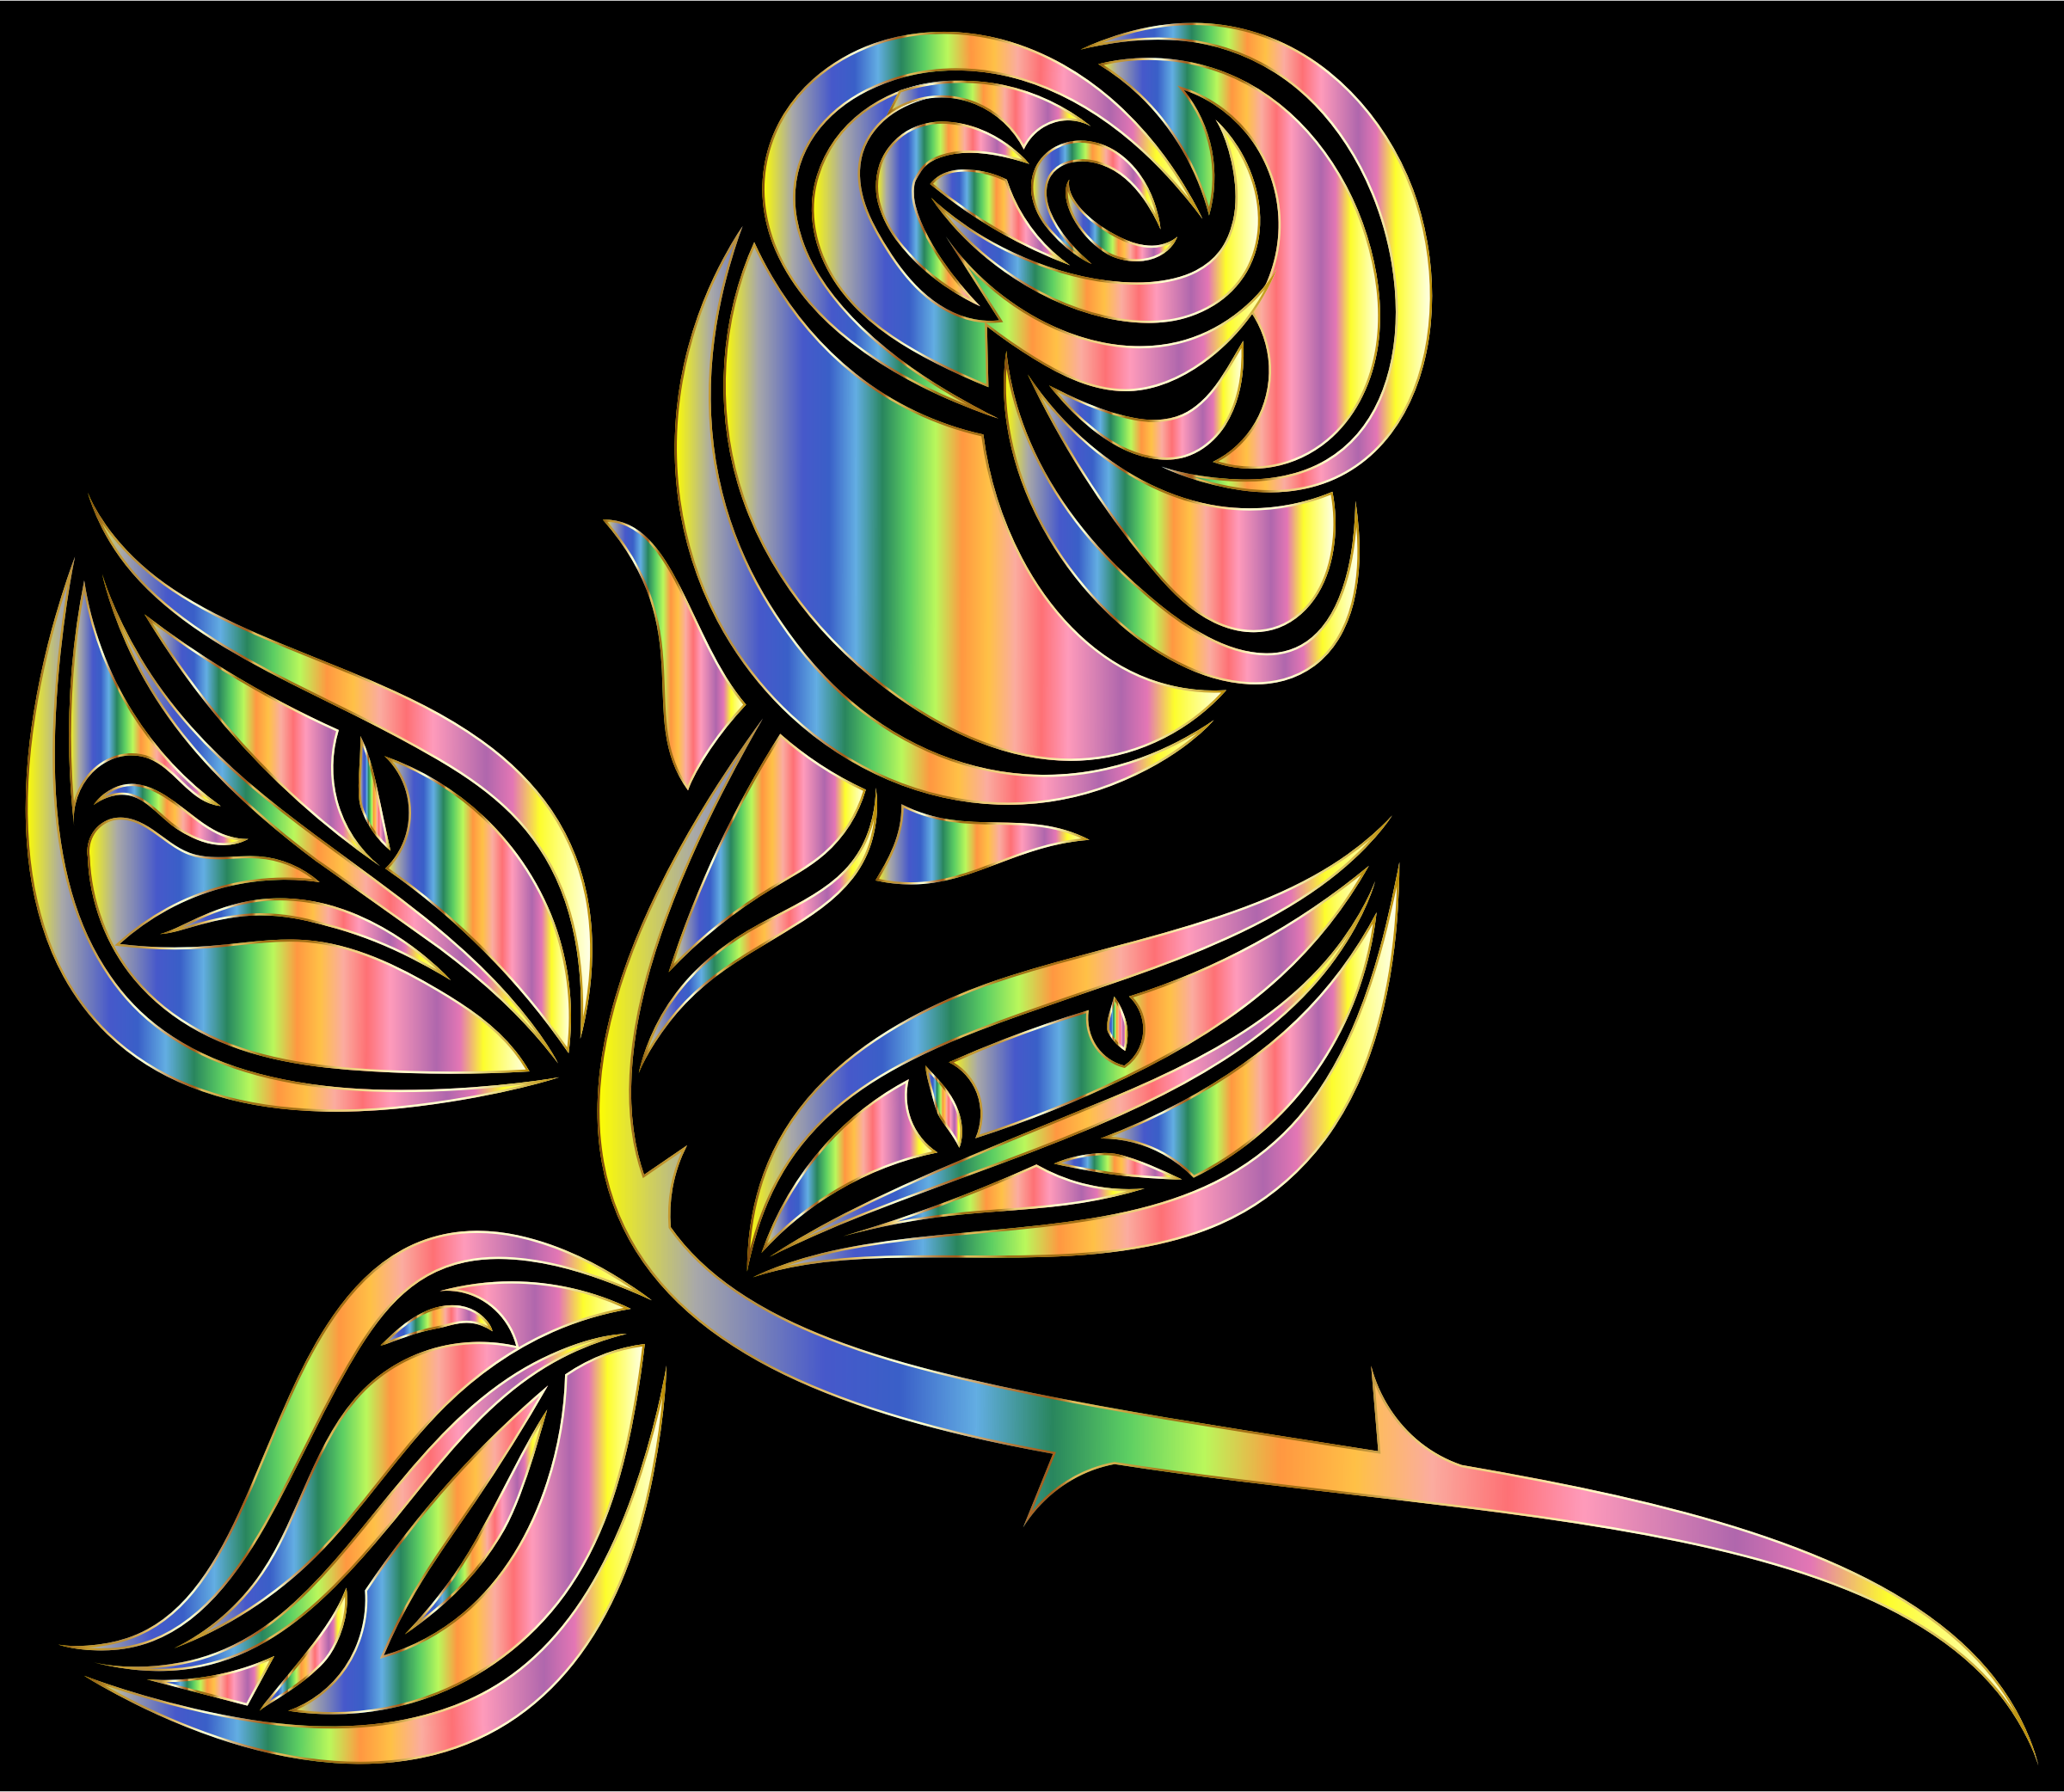 Stylized Rose Extended 6 by GDJ